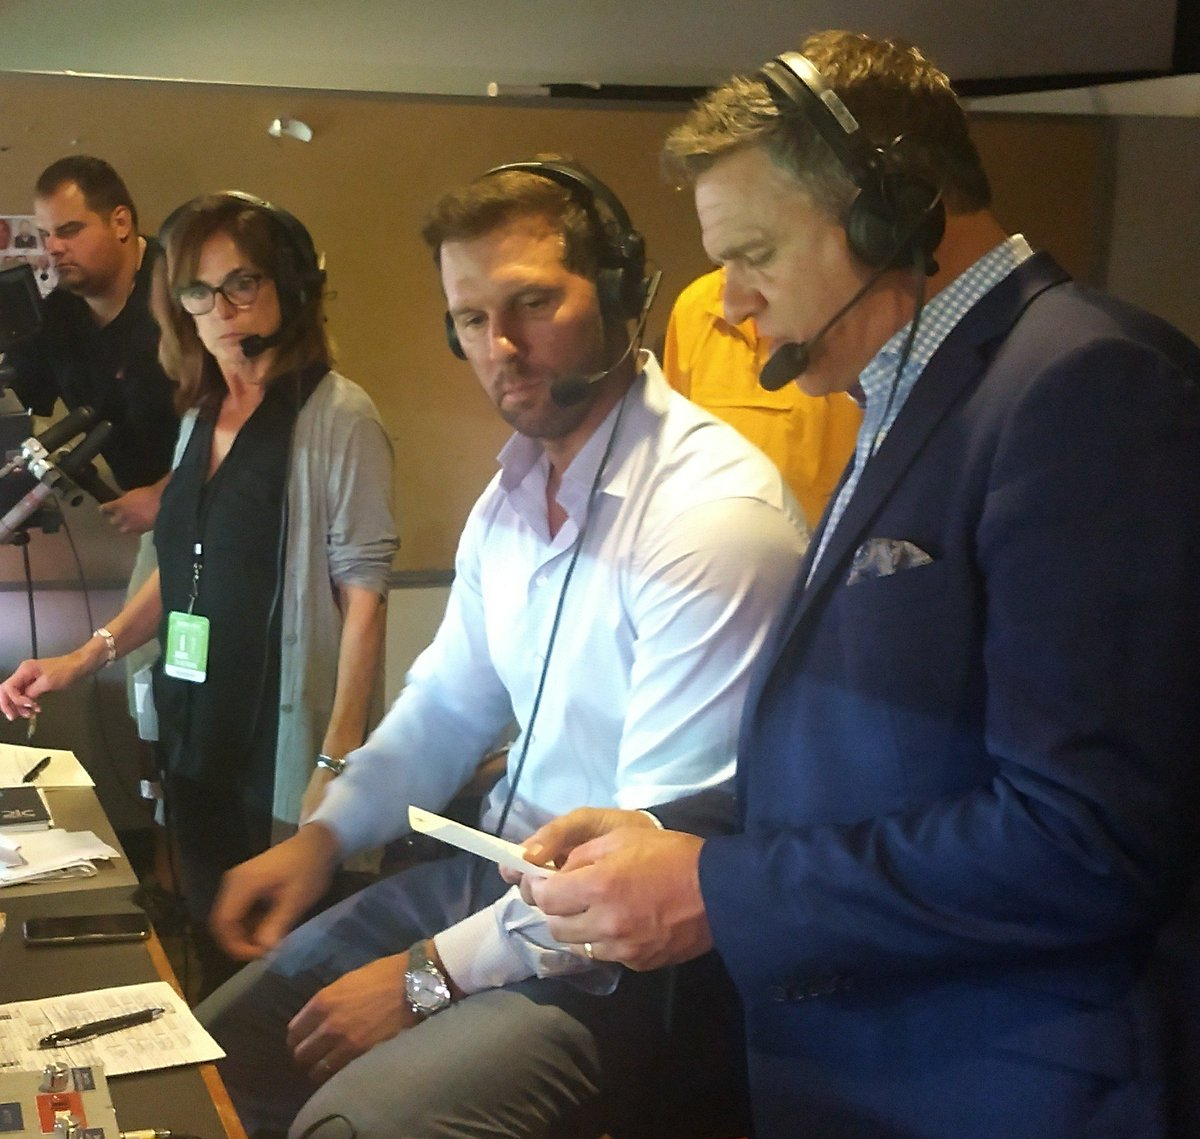 Great chance Fri. to work for @JaycrawfordCLE &amp; @timcouchtv in the booth and @DustinFox37, @BernieKosarQB on the field during their call of @browns game on @WEWS!! Not everyday does an opportunity pop up to work w/ 3 former @NFL players &amp; a nationally known broadcaster #ThxGuys<br>http://pic.twitter.com/t0gcFkaFCZ